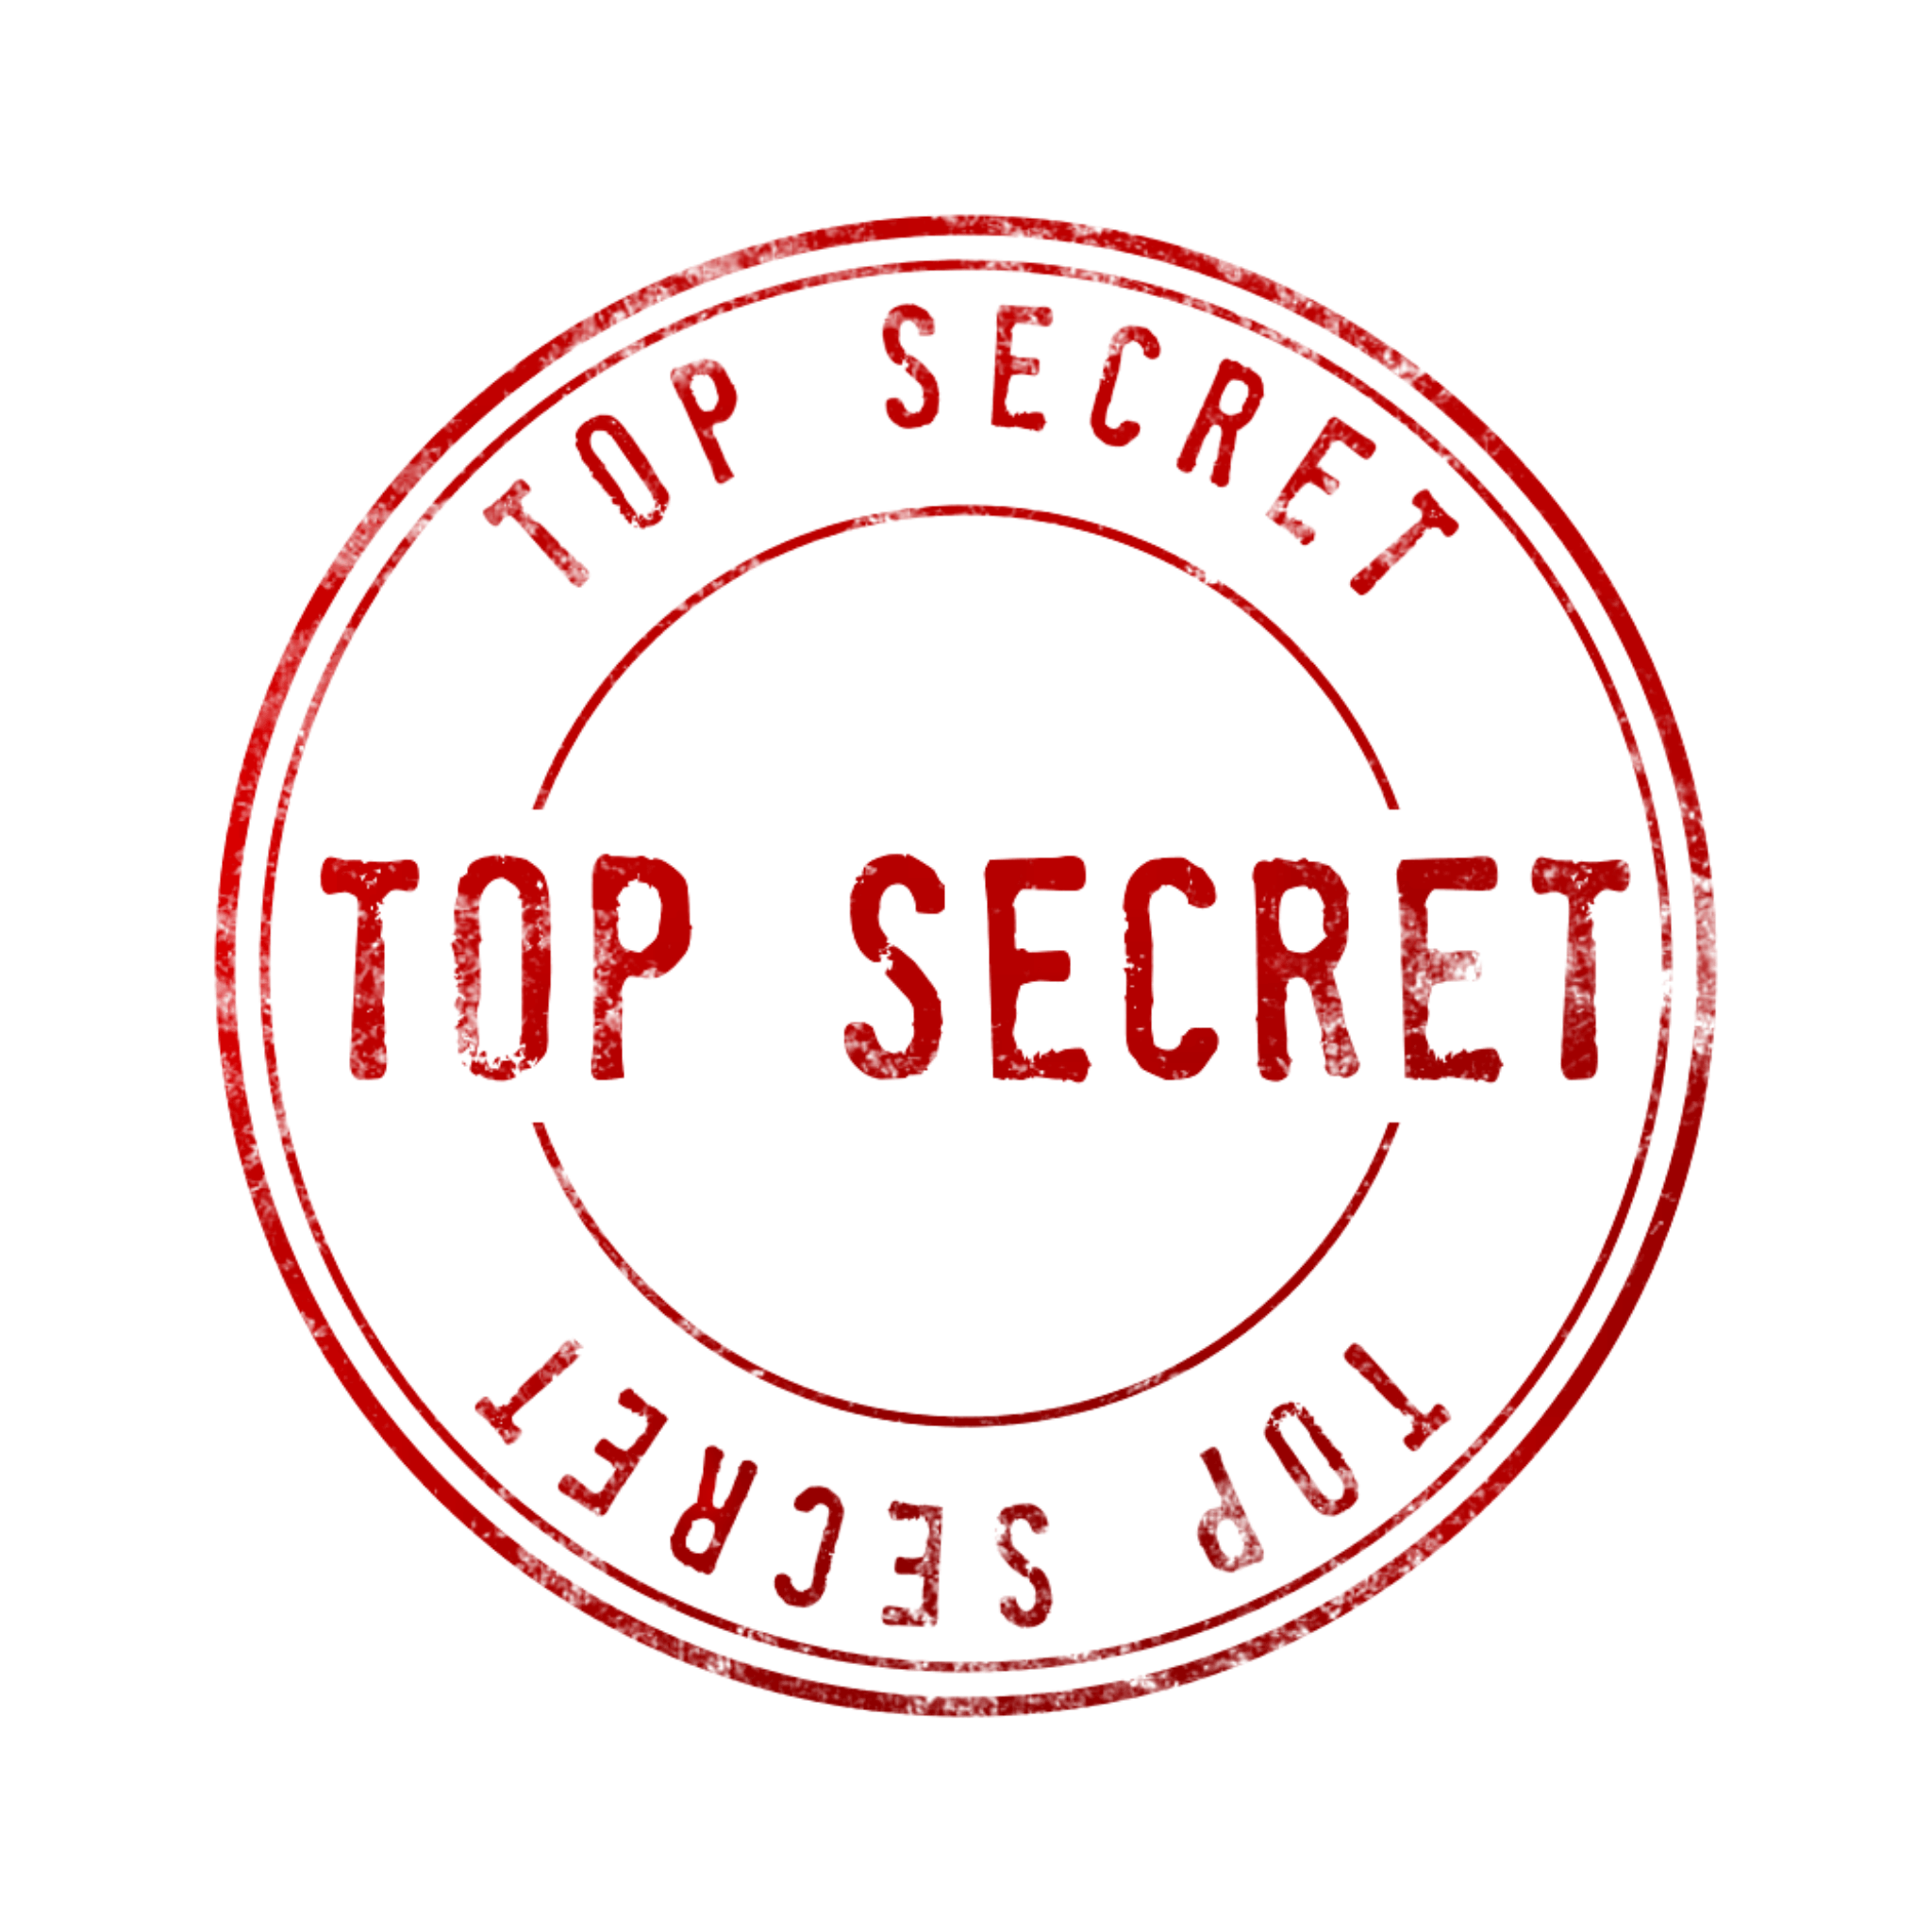 Free stock photo of secret, stamp, military operation, top secret stamp